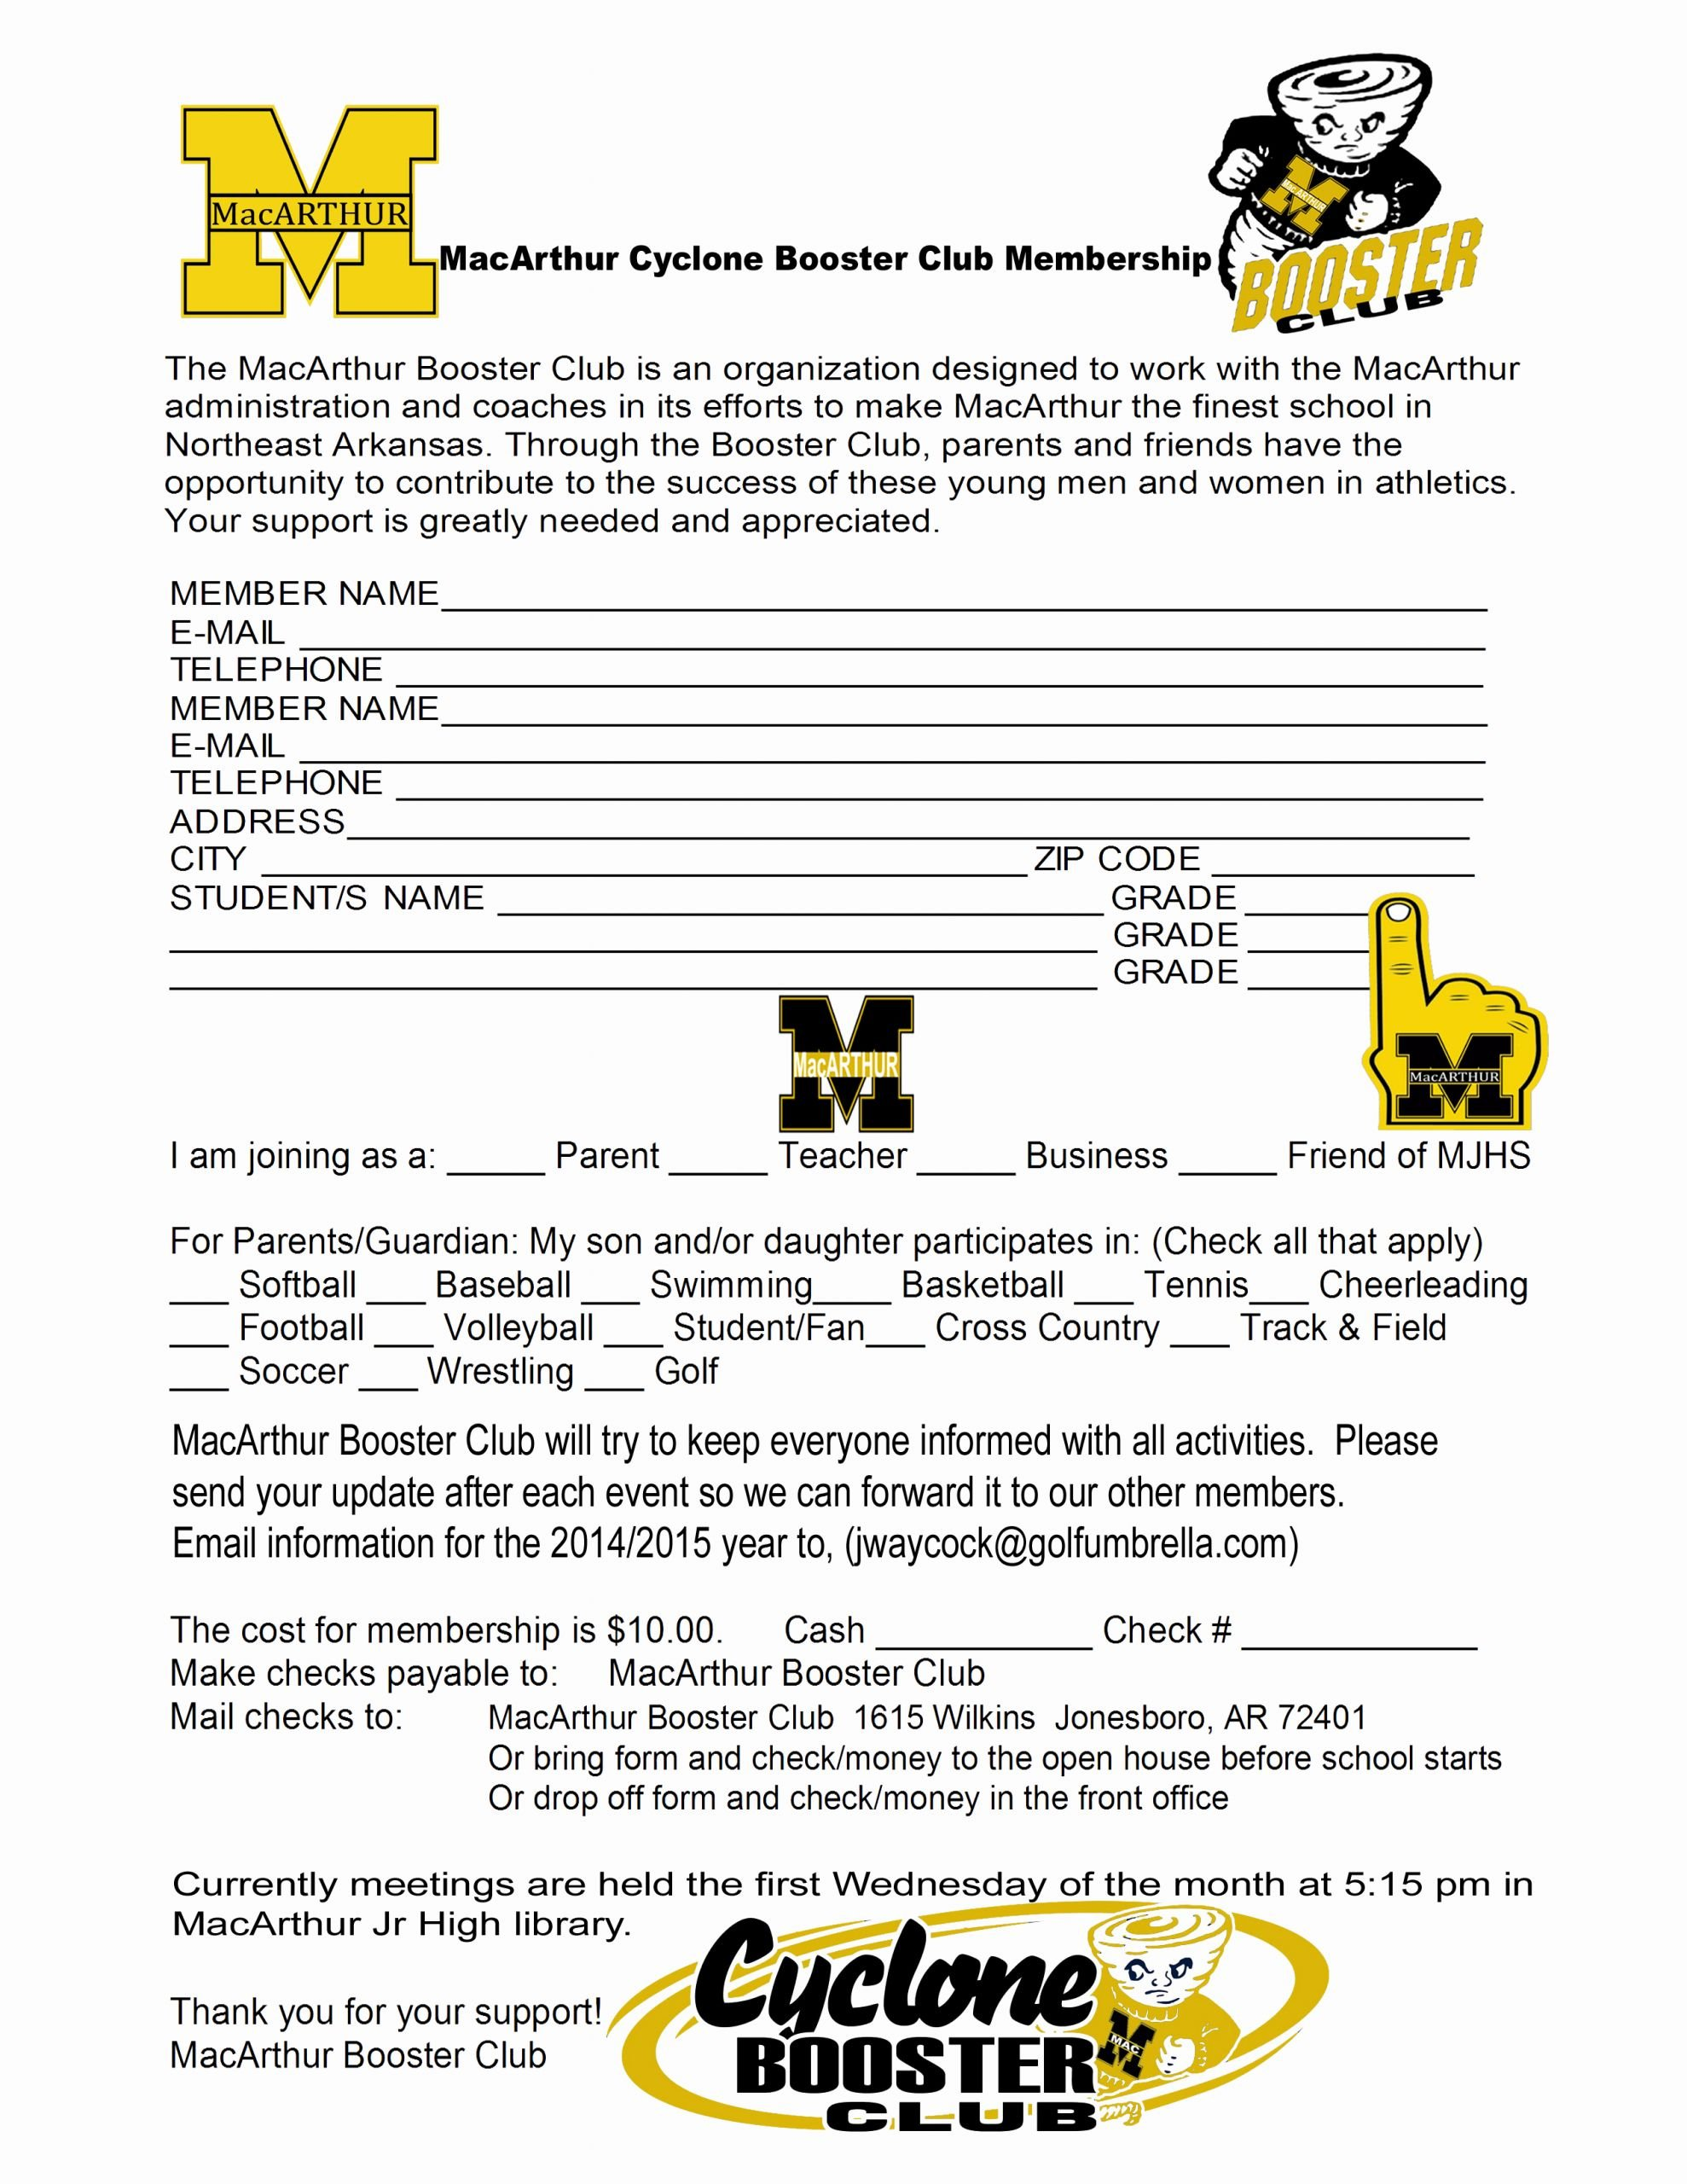 Booster Club Membership form Template Fresh Important forms Macarthur Football 2015